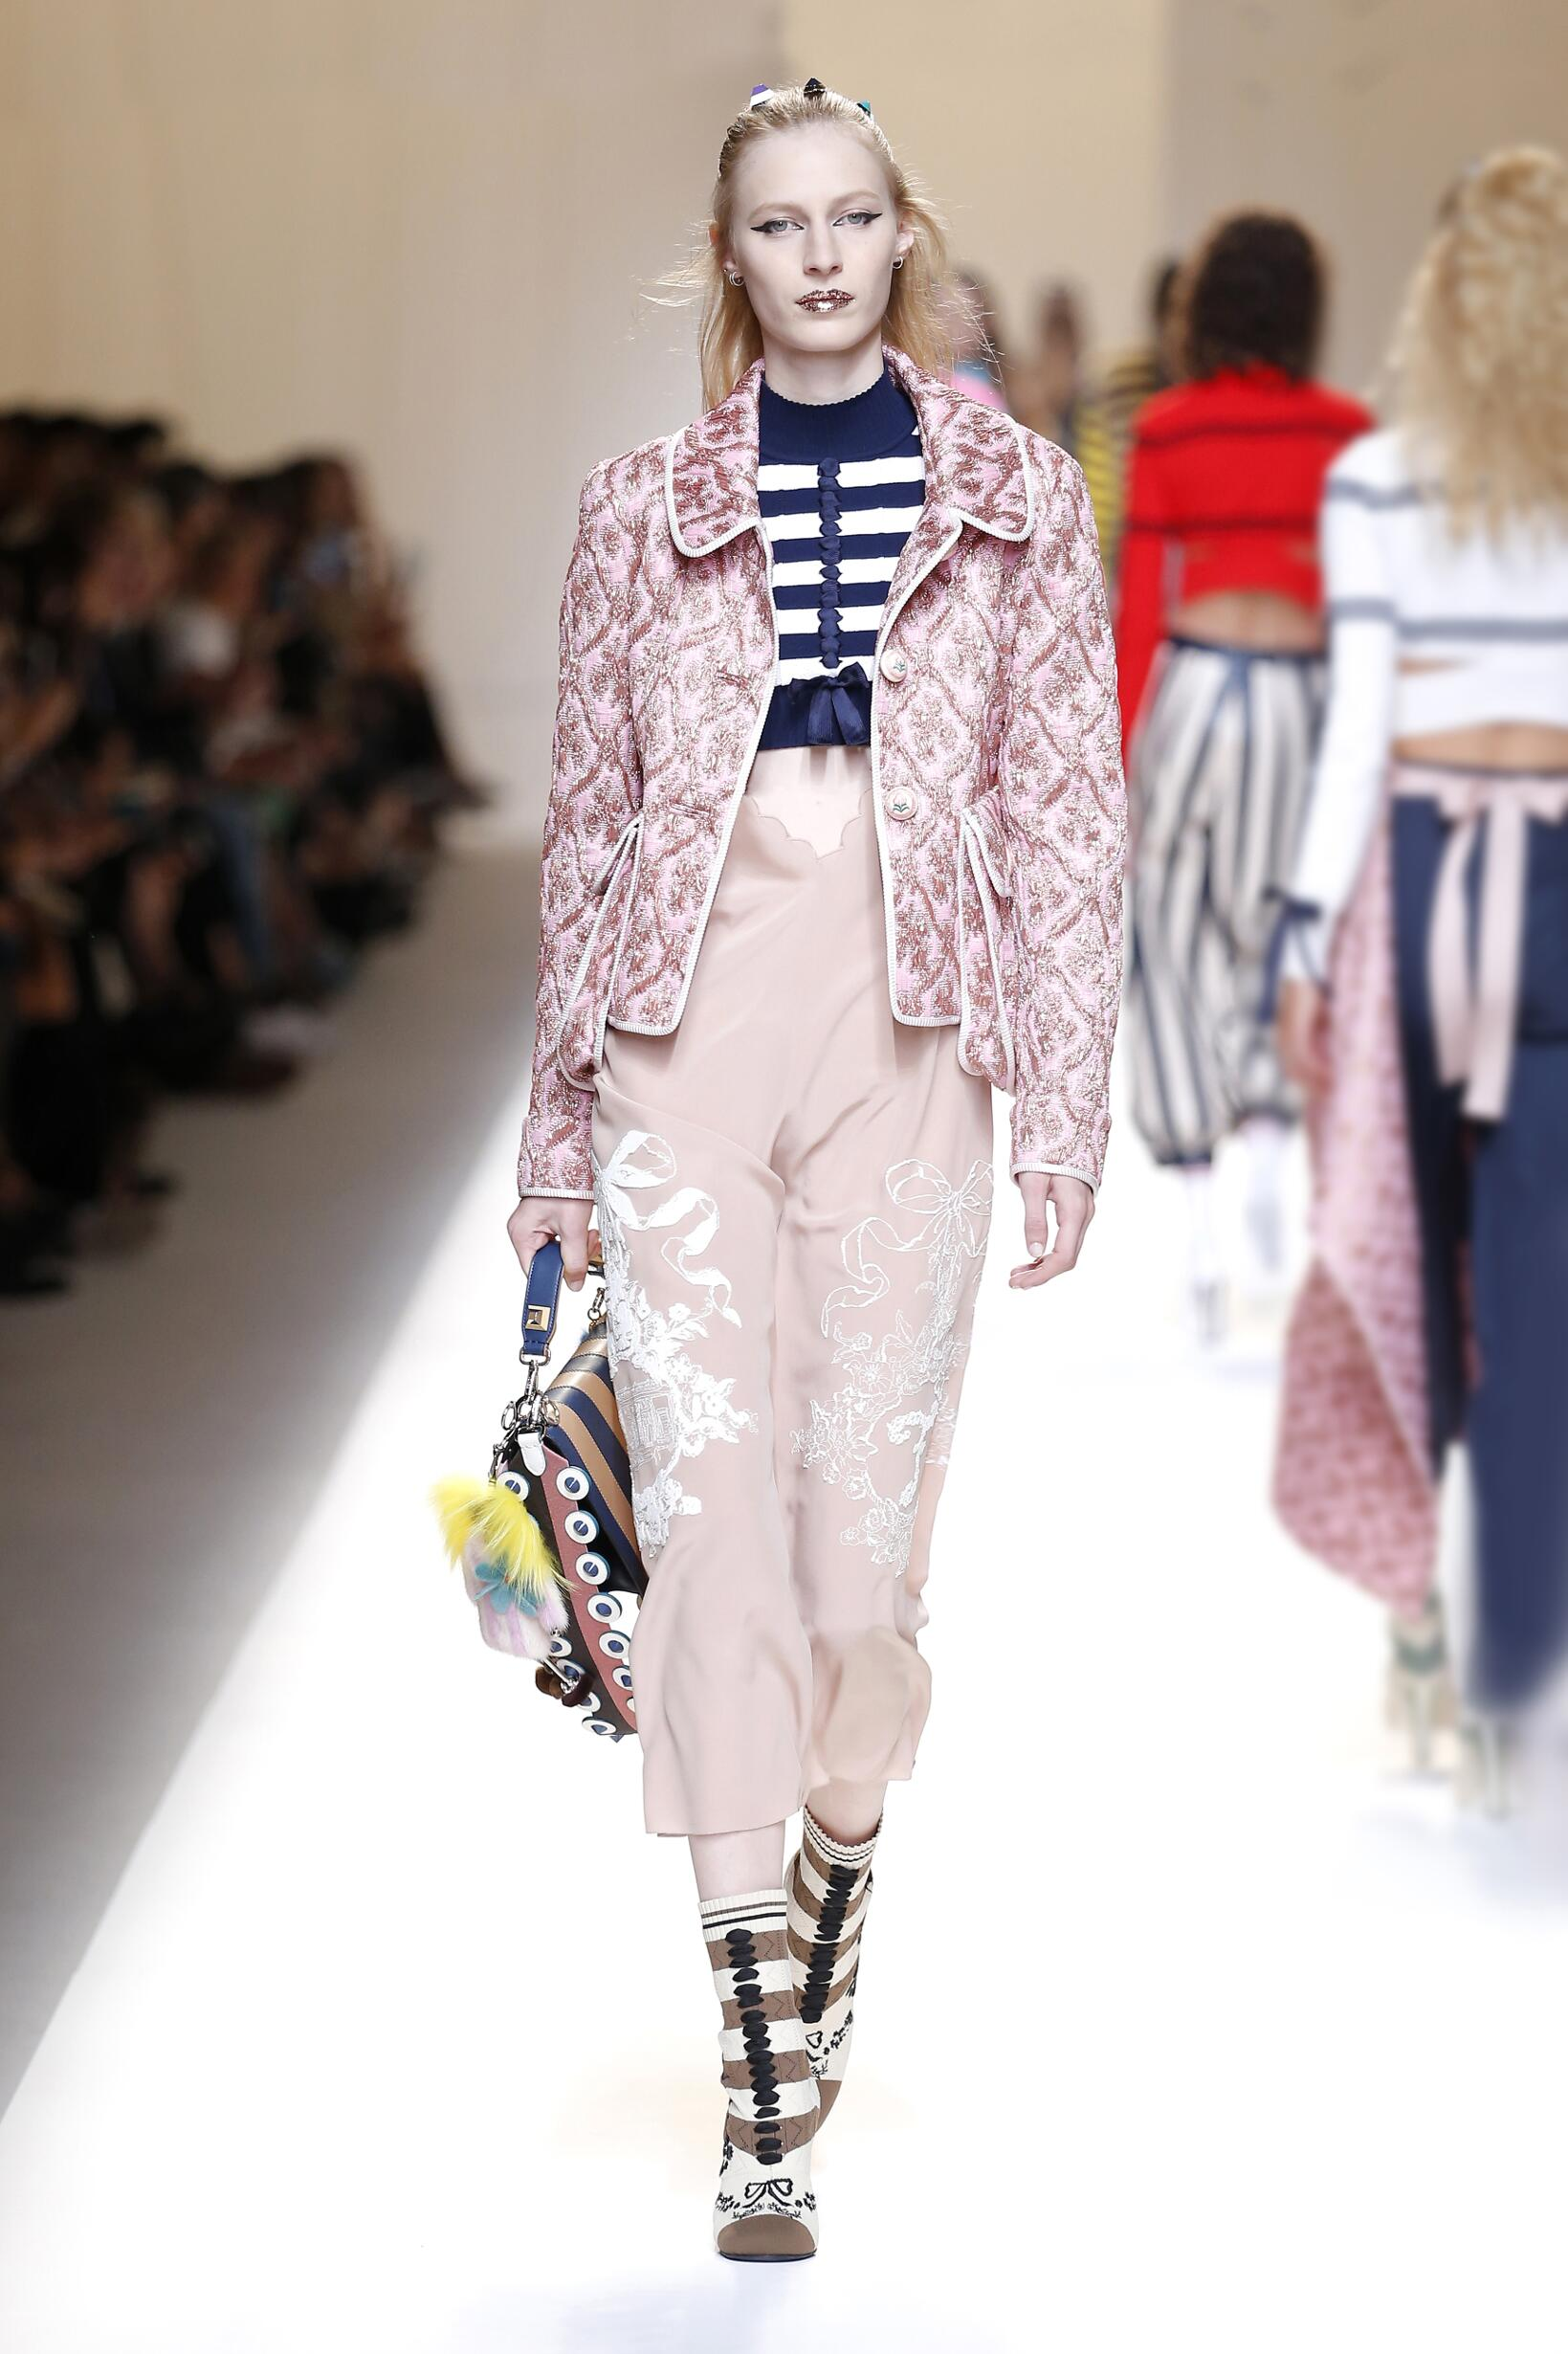 FENDI SPRING SUMMER 2017 WOMEN'S COLLECTION | The Skinny Beep